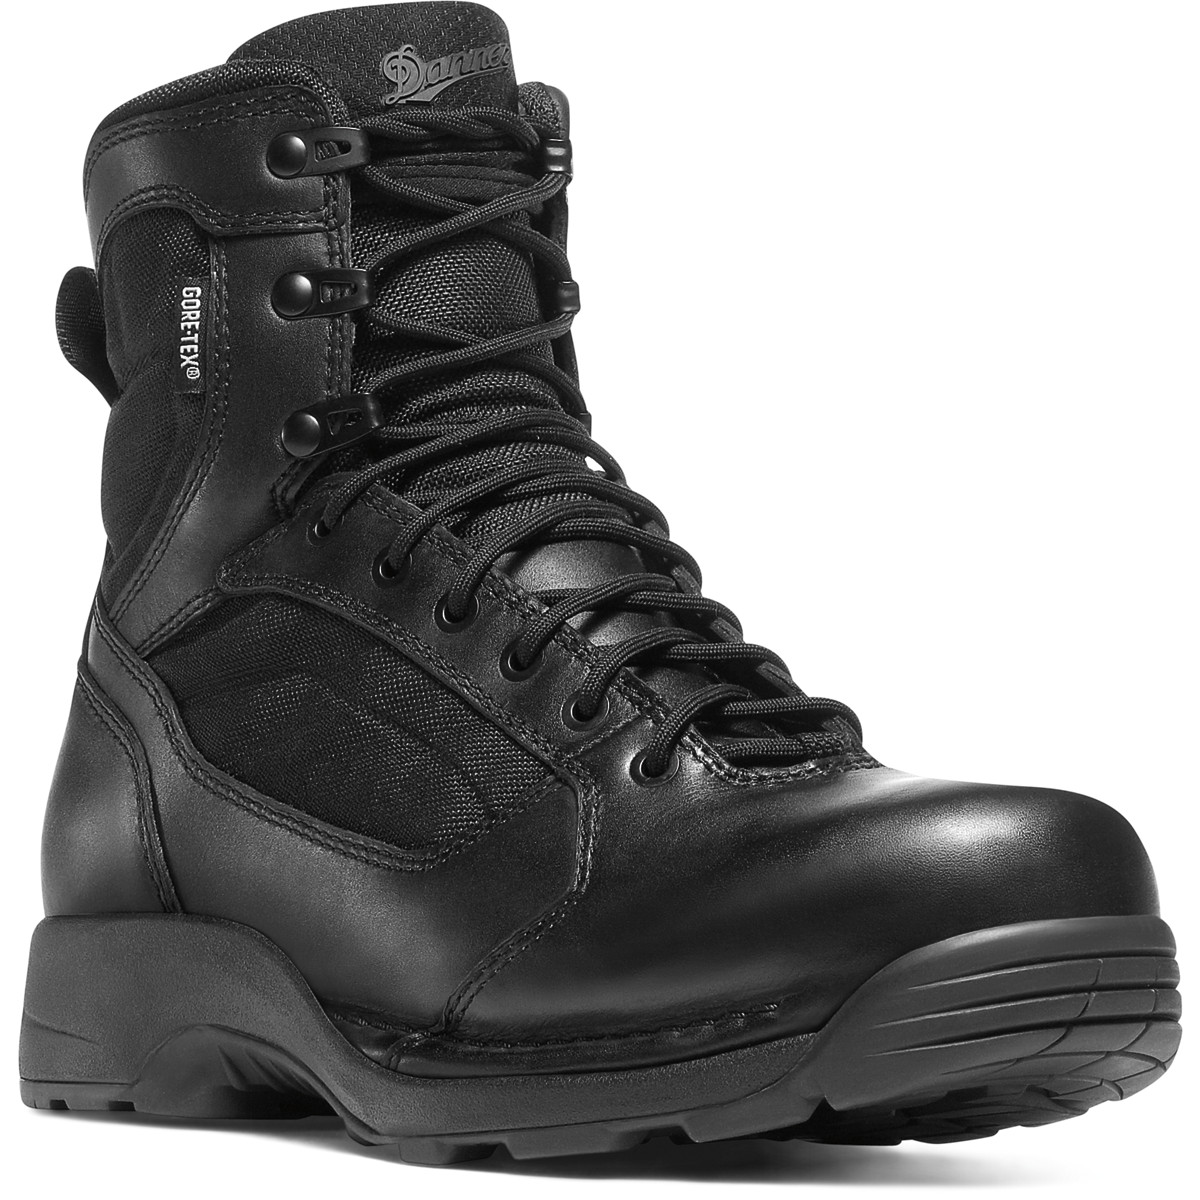 "Danner Striker Torrent 6"" Side Zip Waterproof"